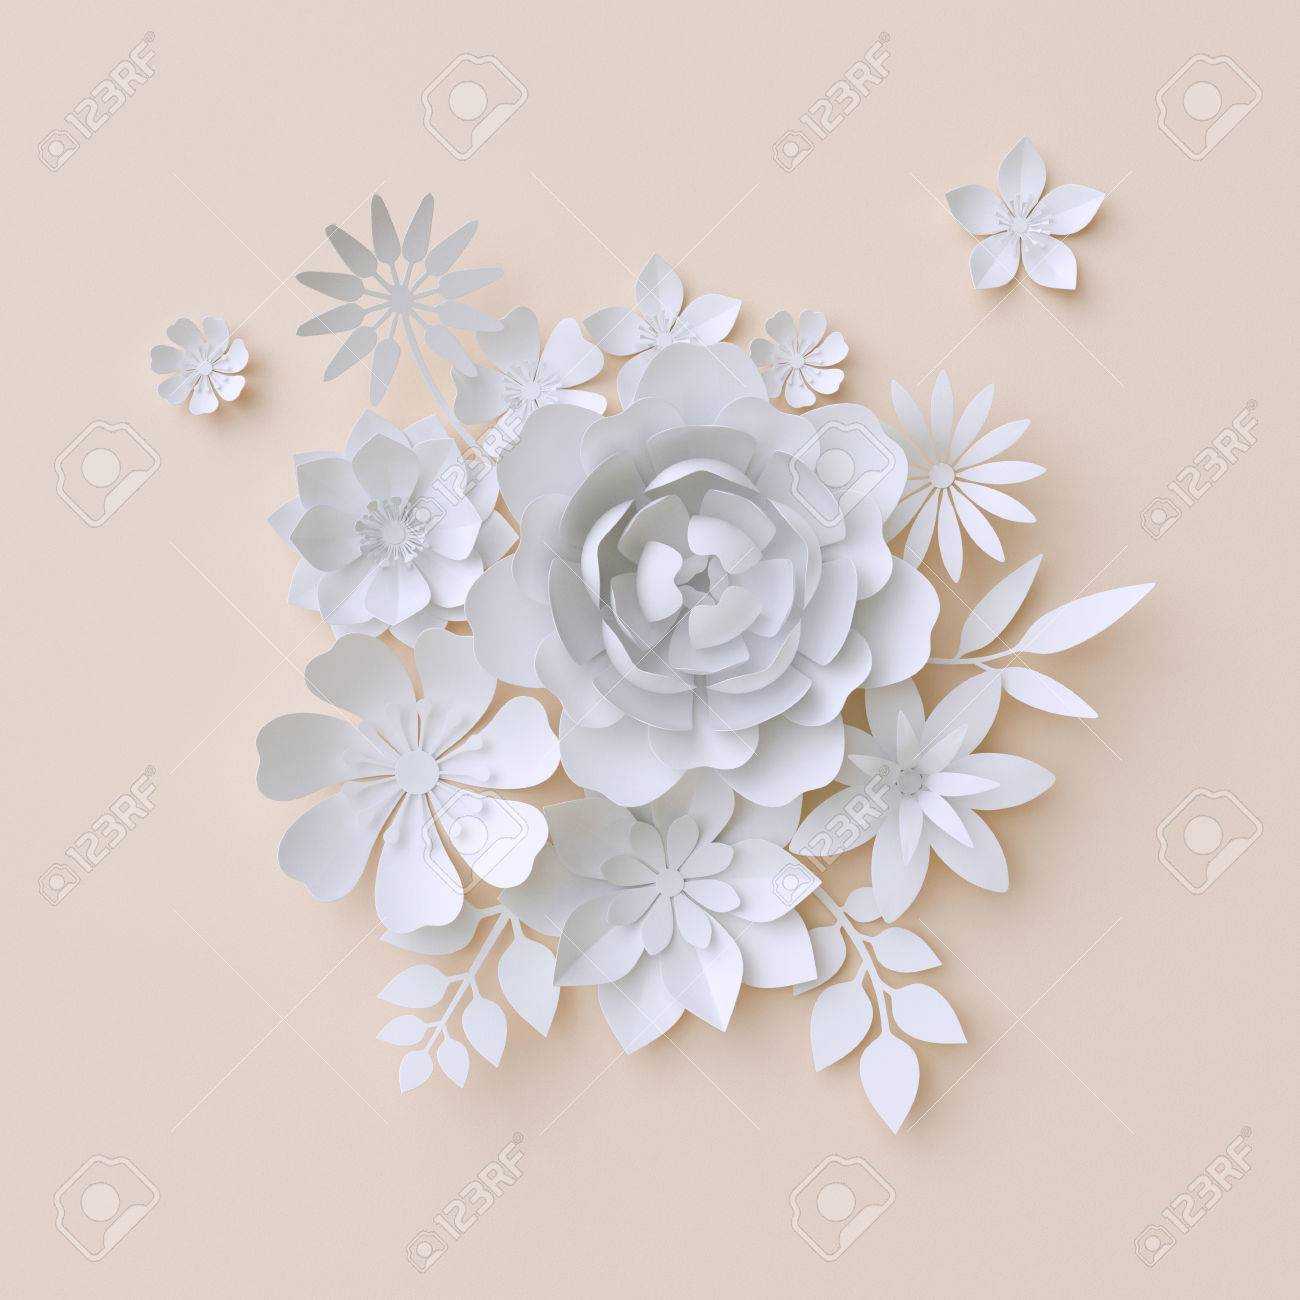 3d illustration white paper flowers decorative floral background wedding album page greeting